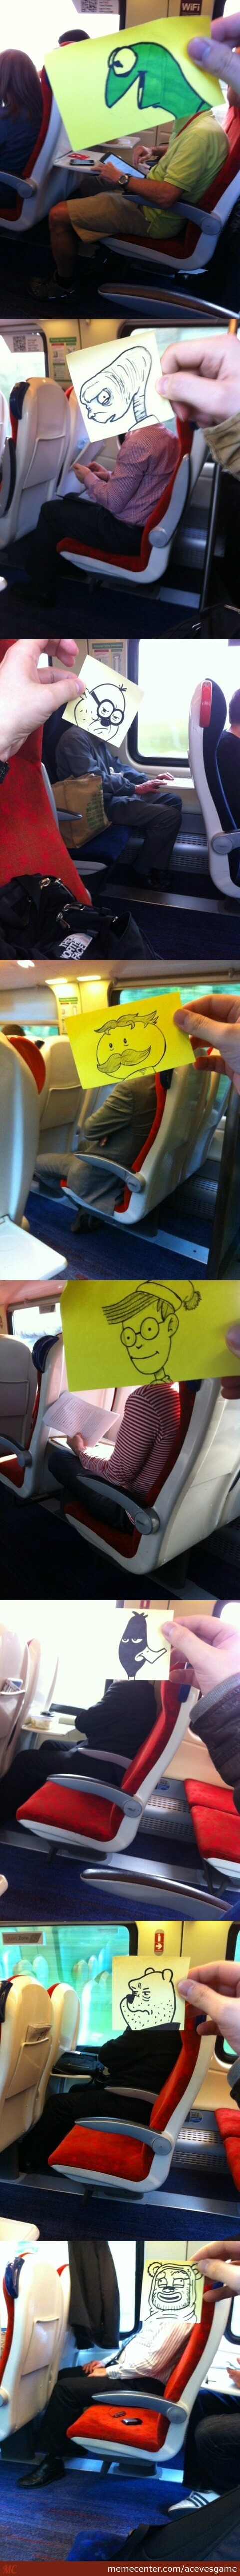 Replacing Strangers Heads With Famous Drawn Character Heads